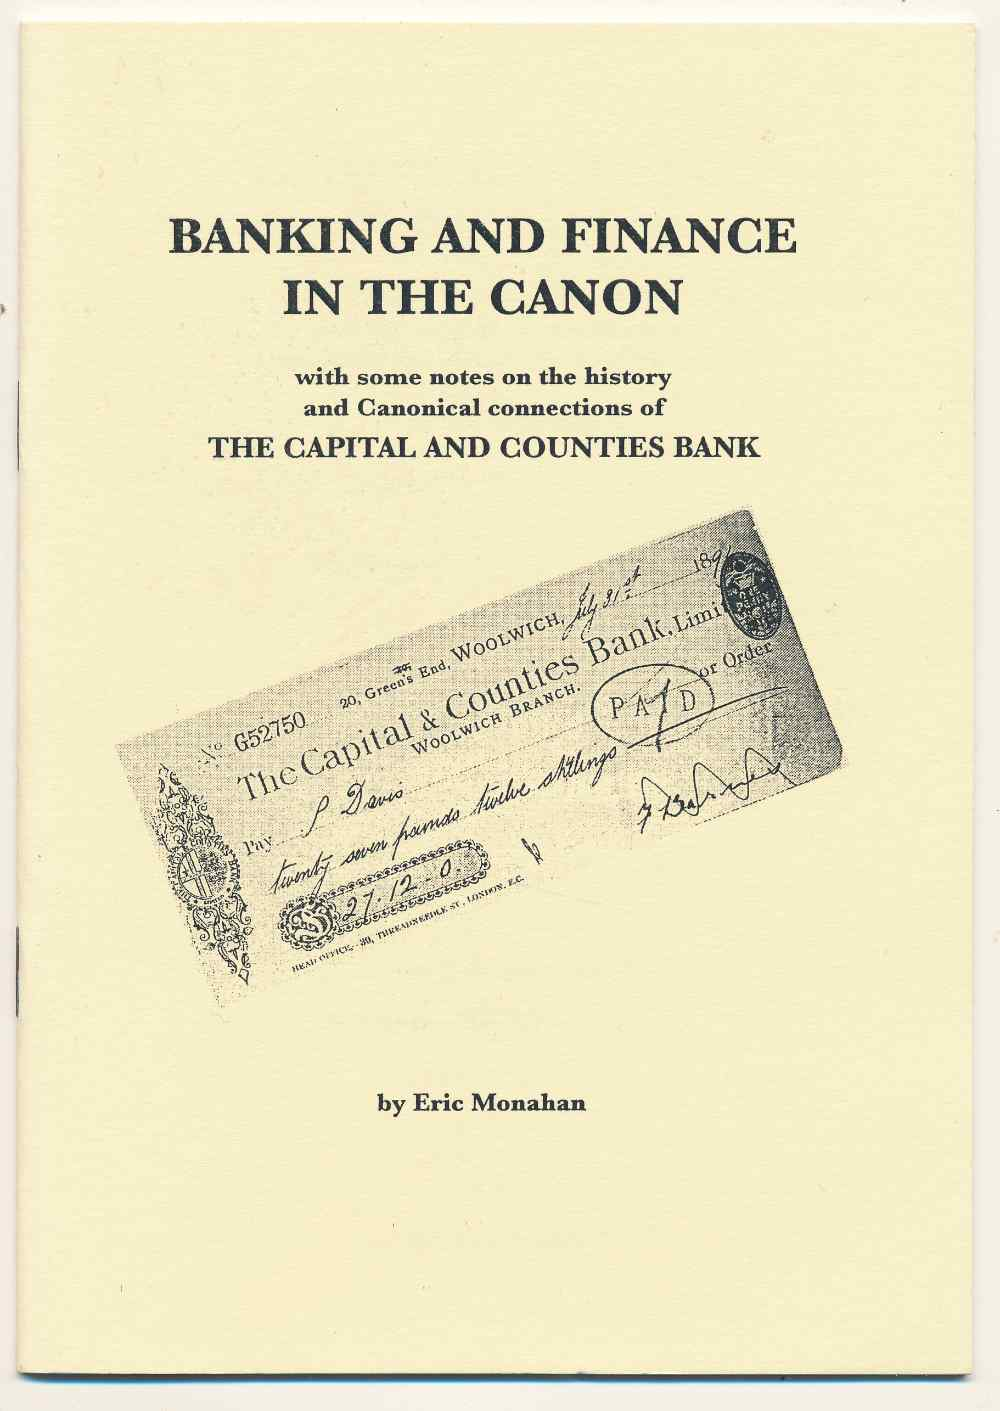 Banking and finance in the canon, with some notes on the history and canonical connections of the Capital and Counties Bank